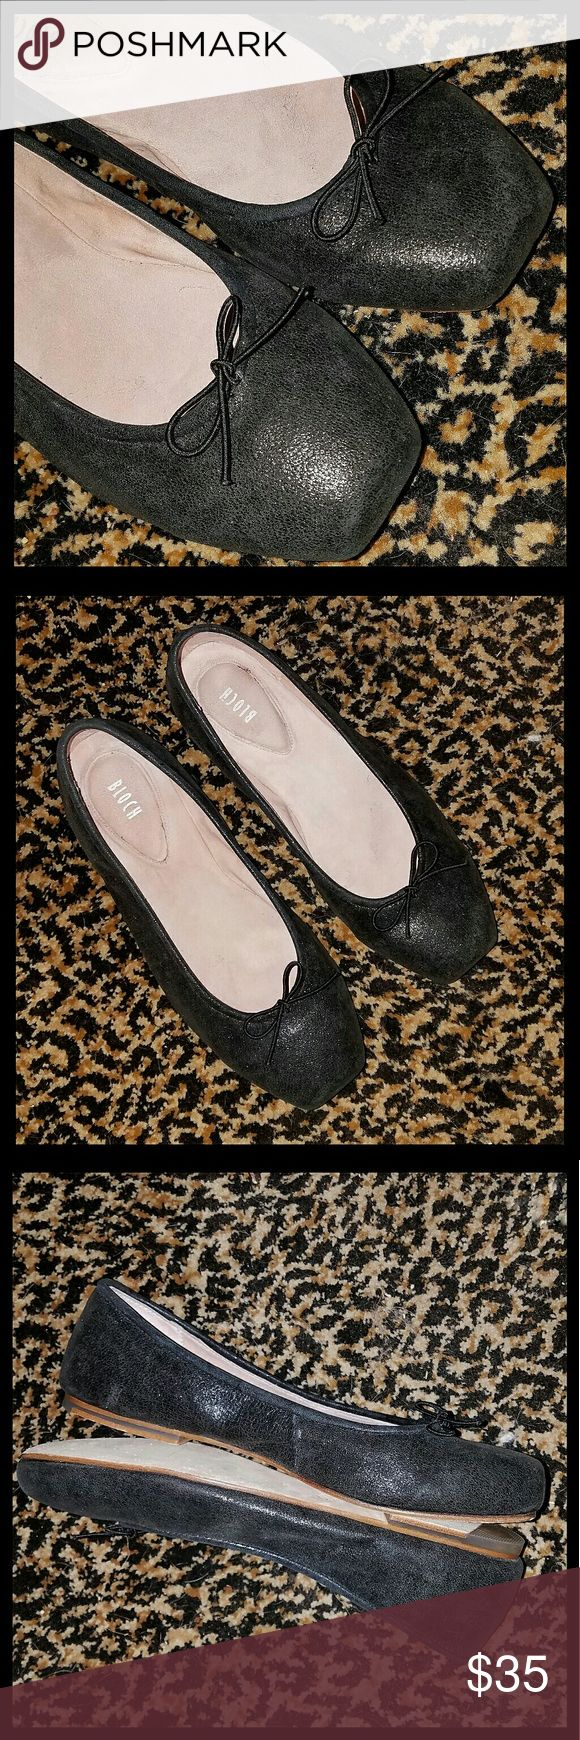 Bloch Ballet Flats Bloch square toe leather flats, w/leather soles. Very little signs of wear. Great condition. Bloch  Shoes Flats & Loafers